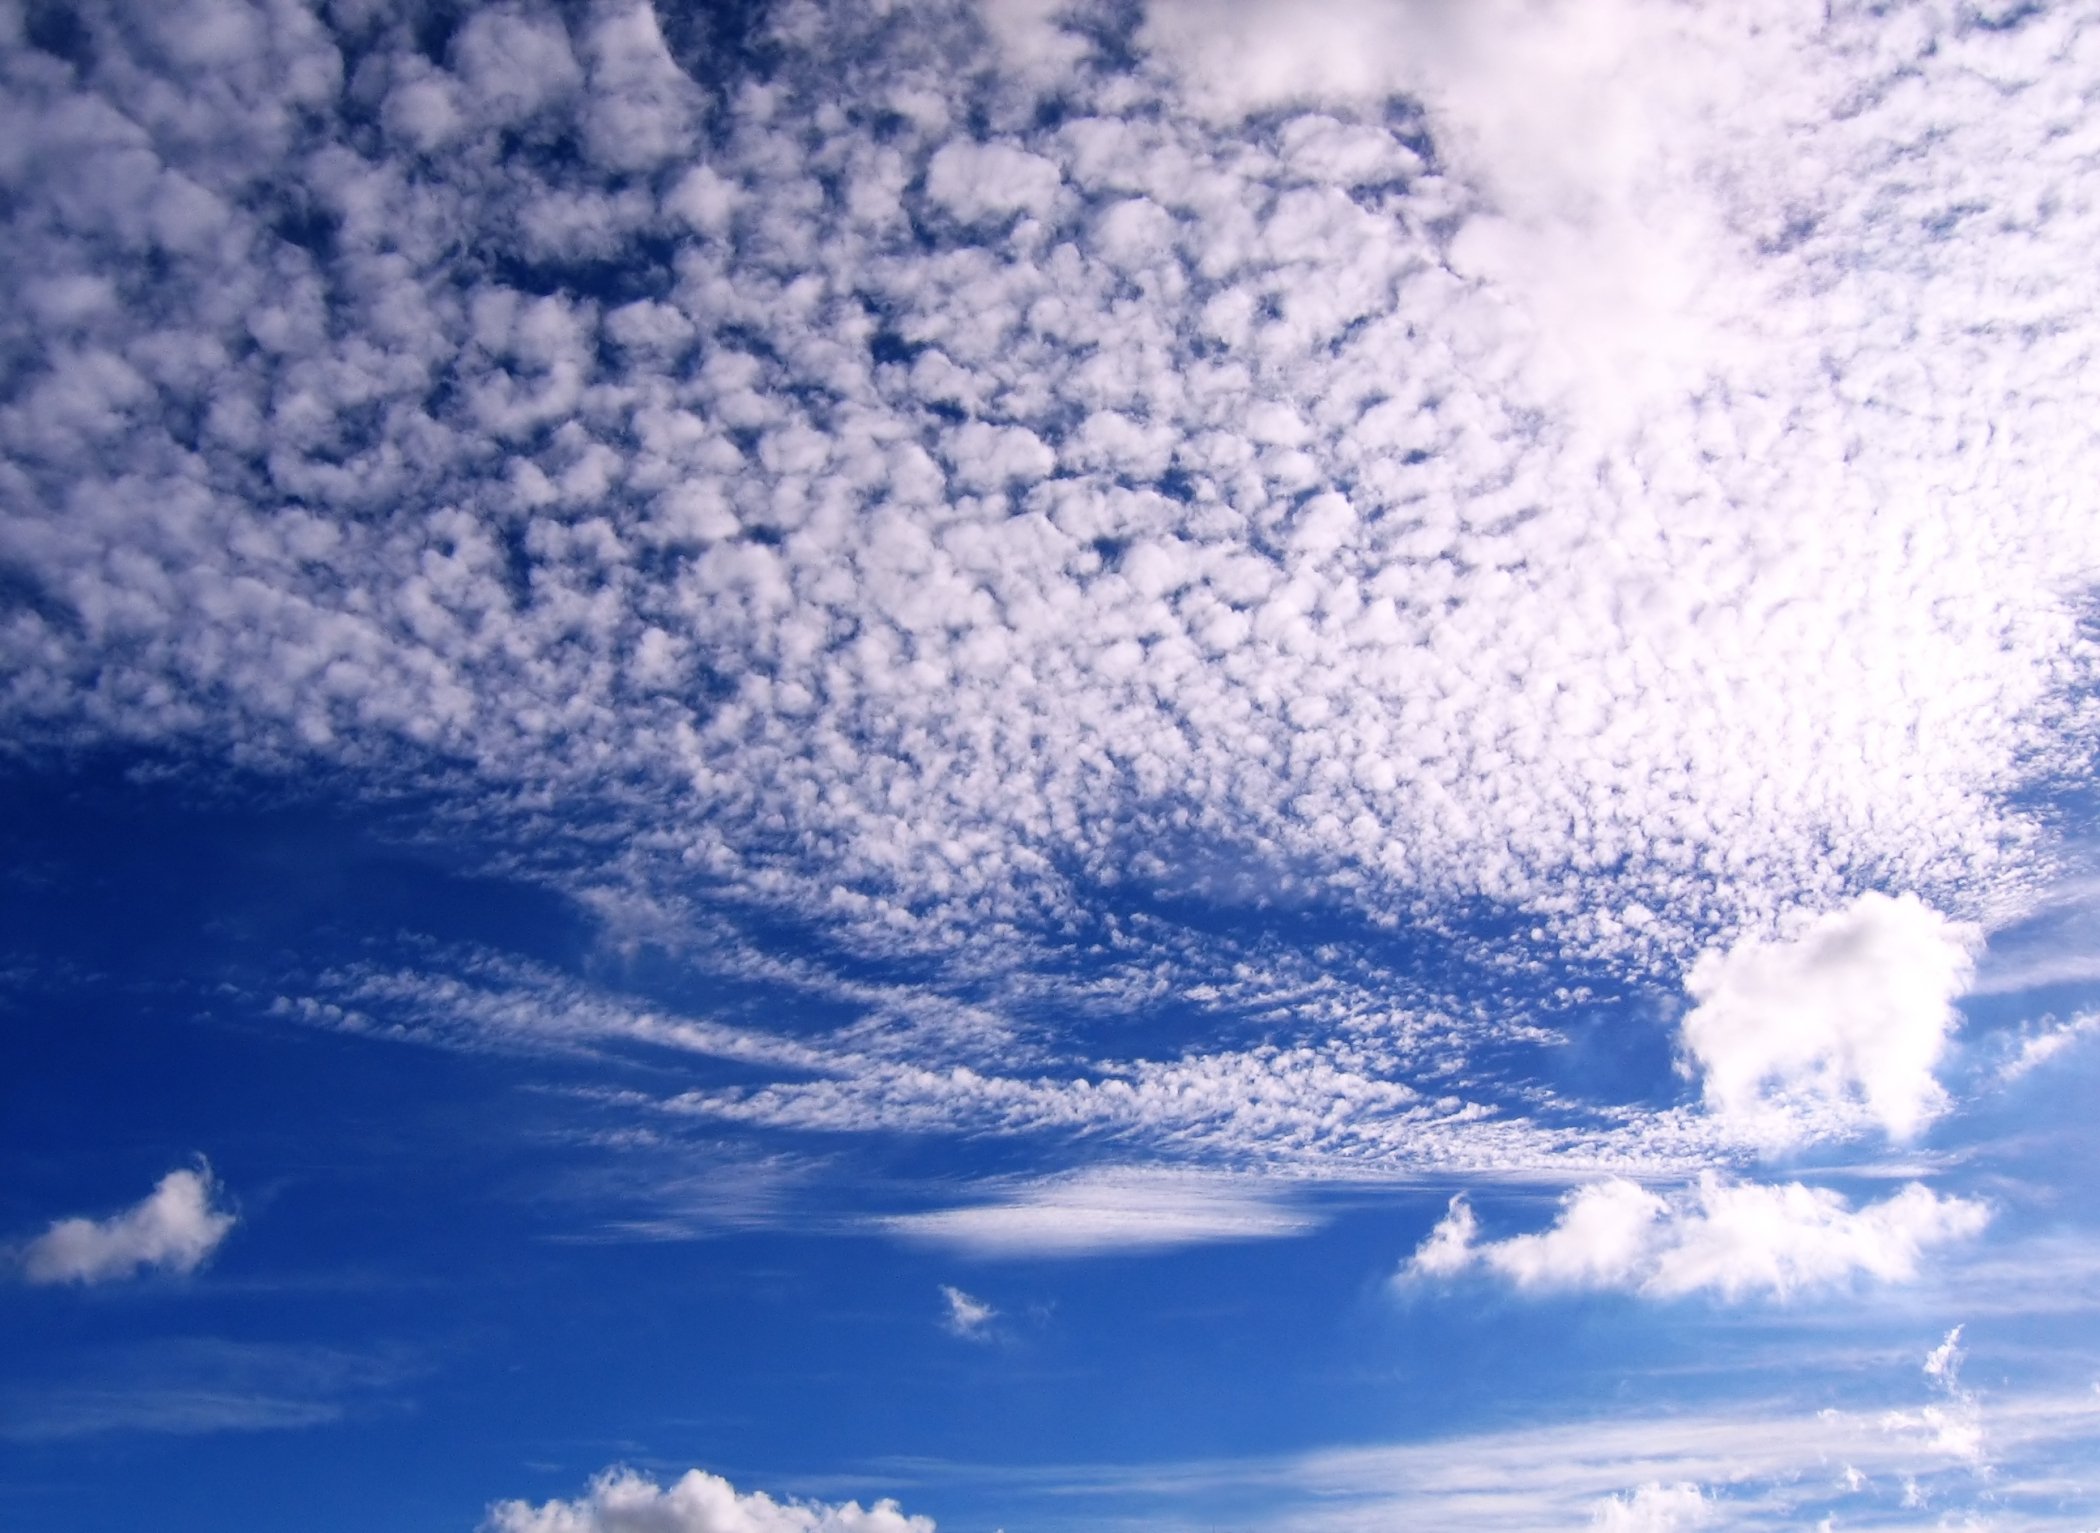 Beautiful sky and cloud formation photo